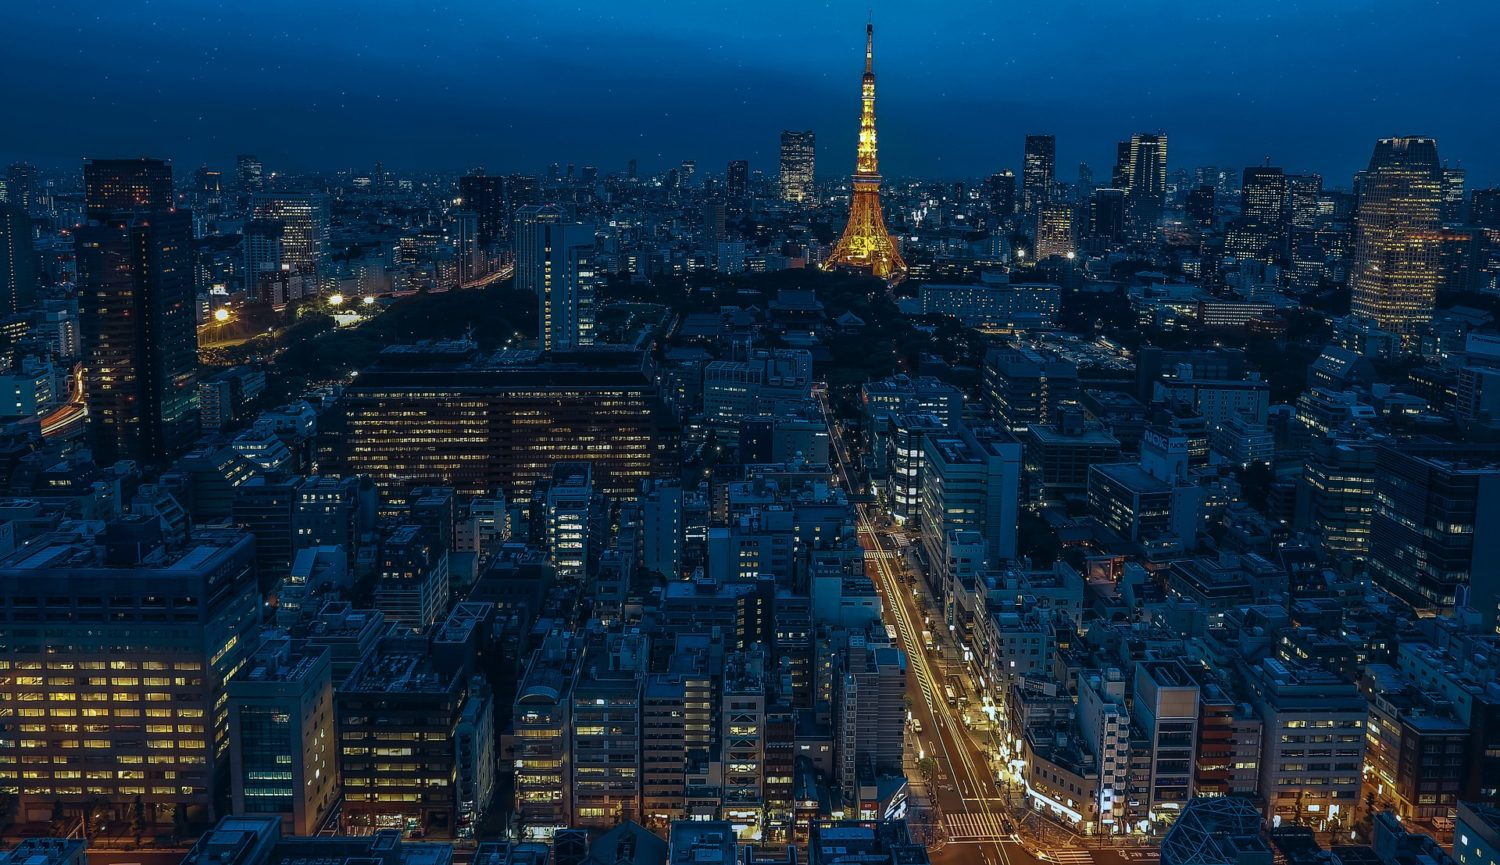 Tokyo, capital of Japan at night